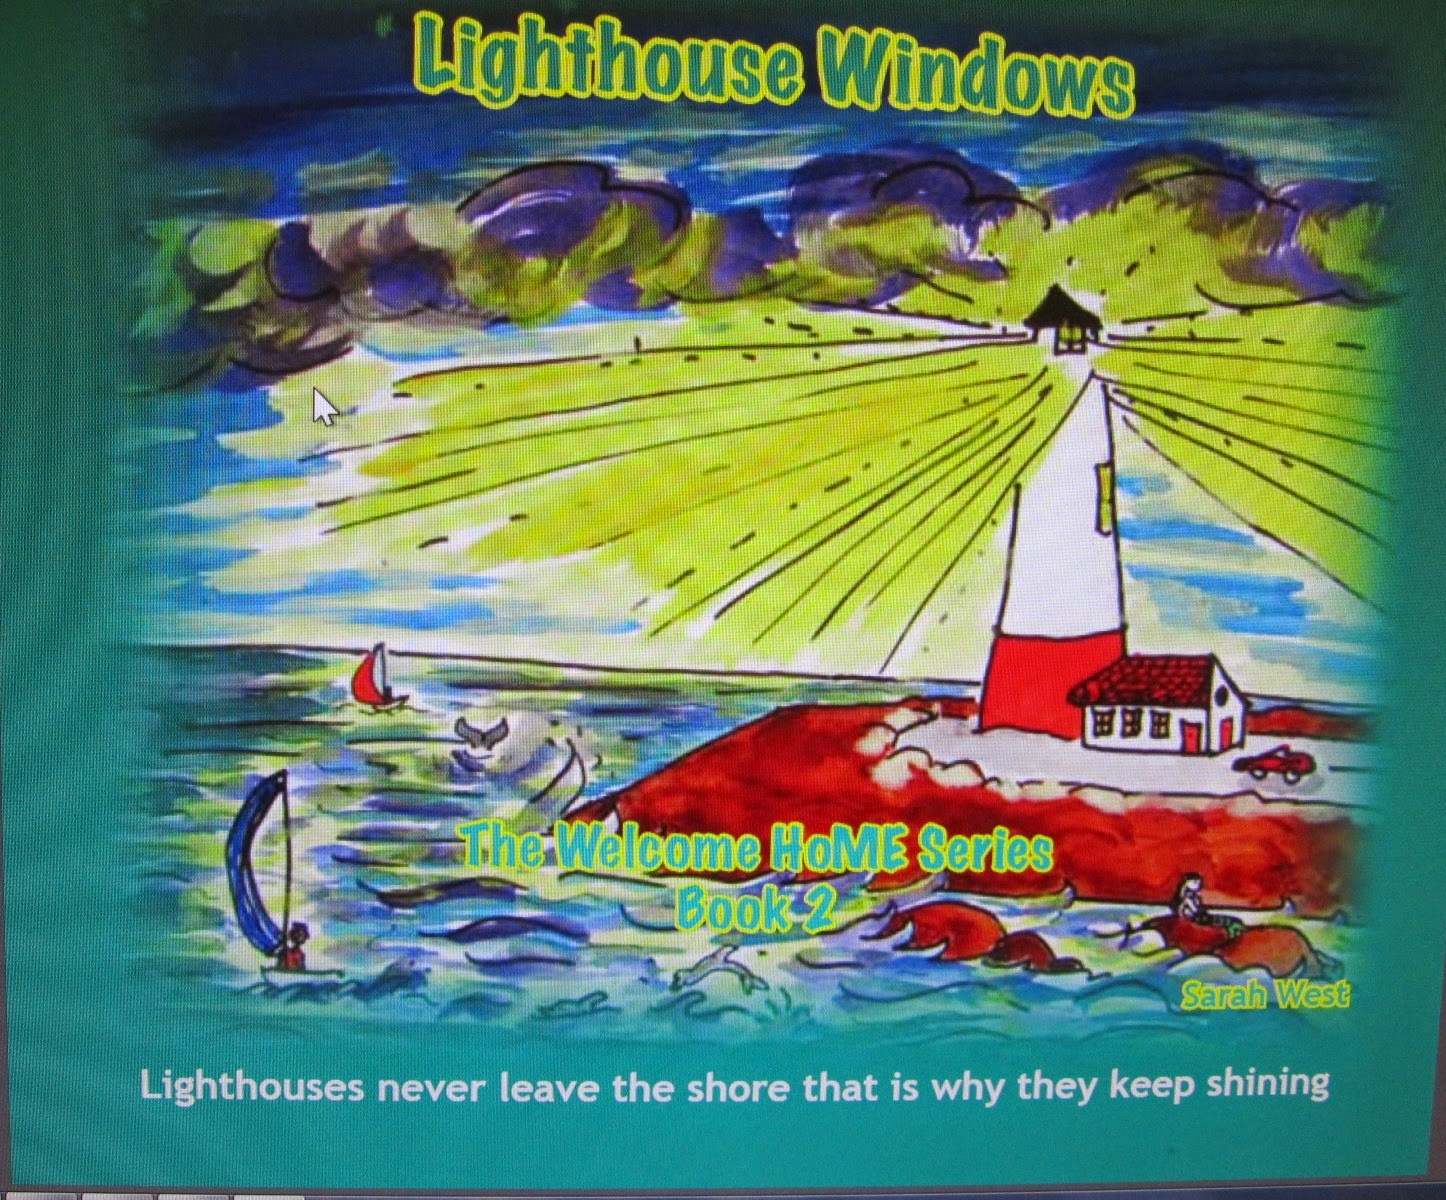 Lighthouse Windows the Ebook